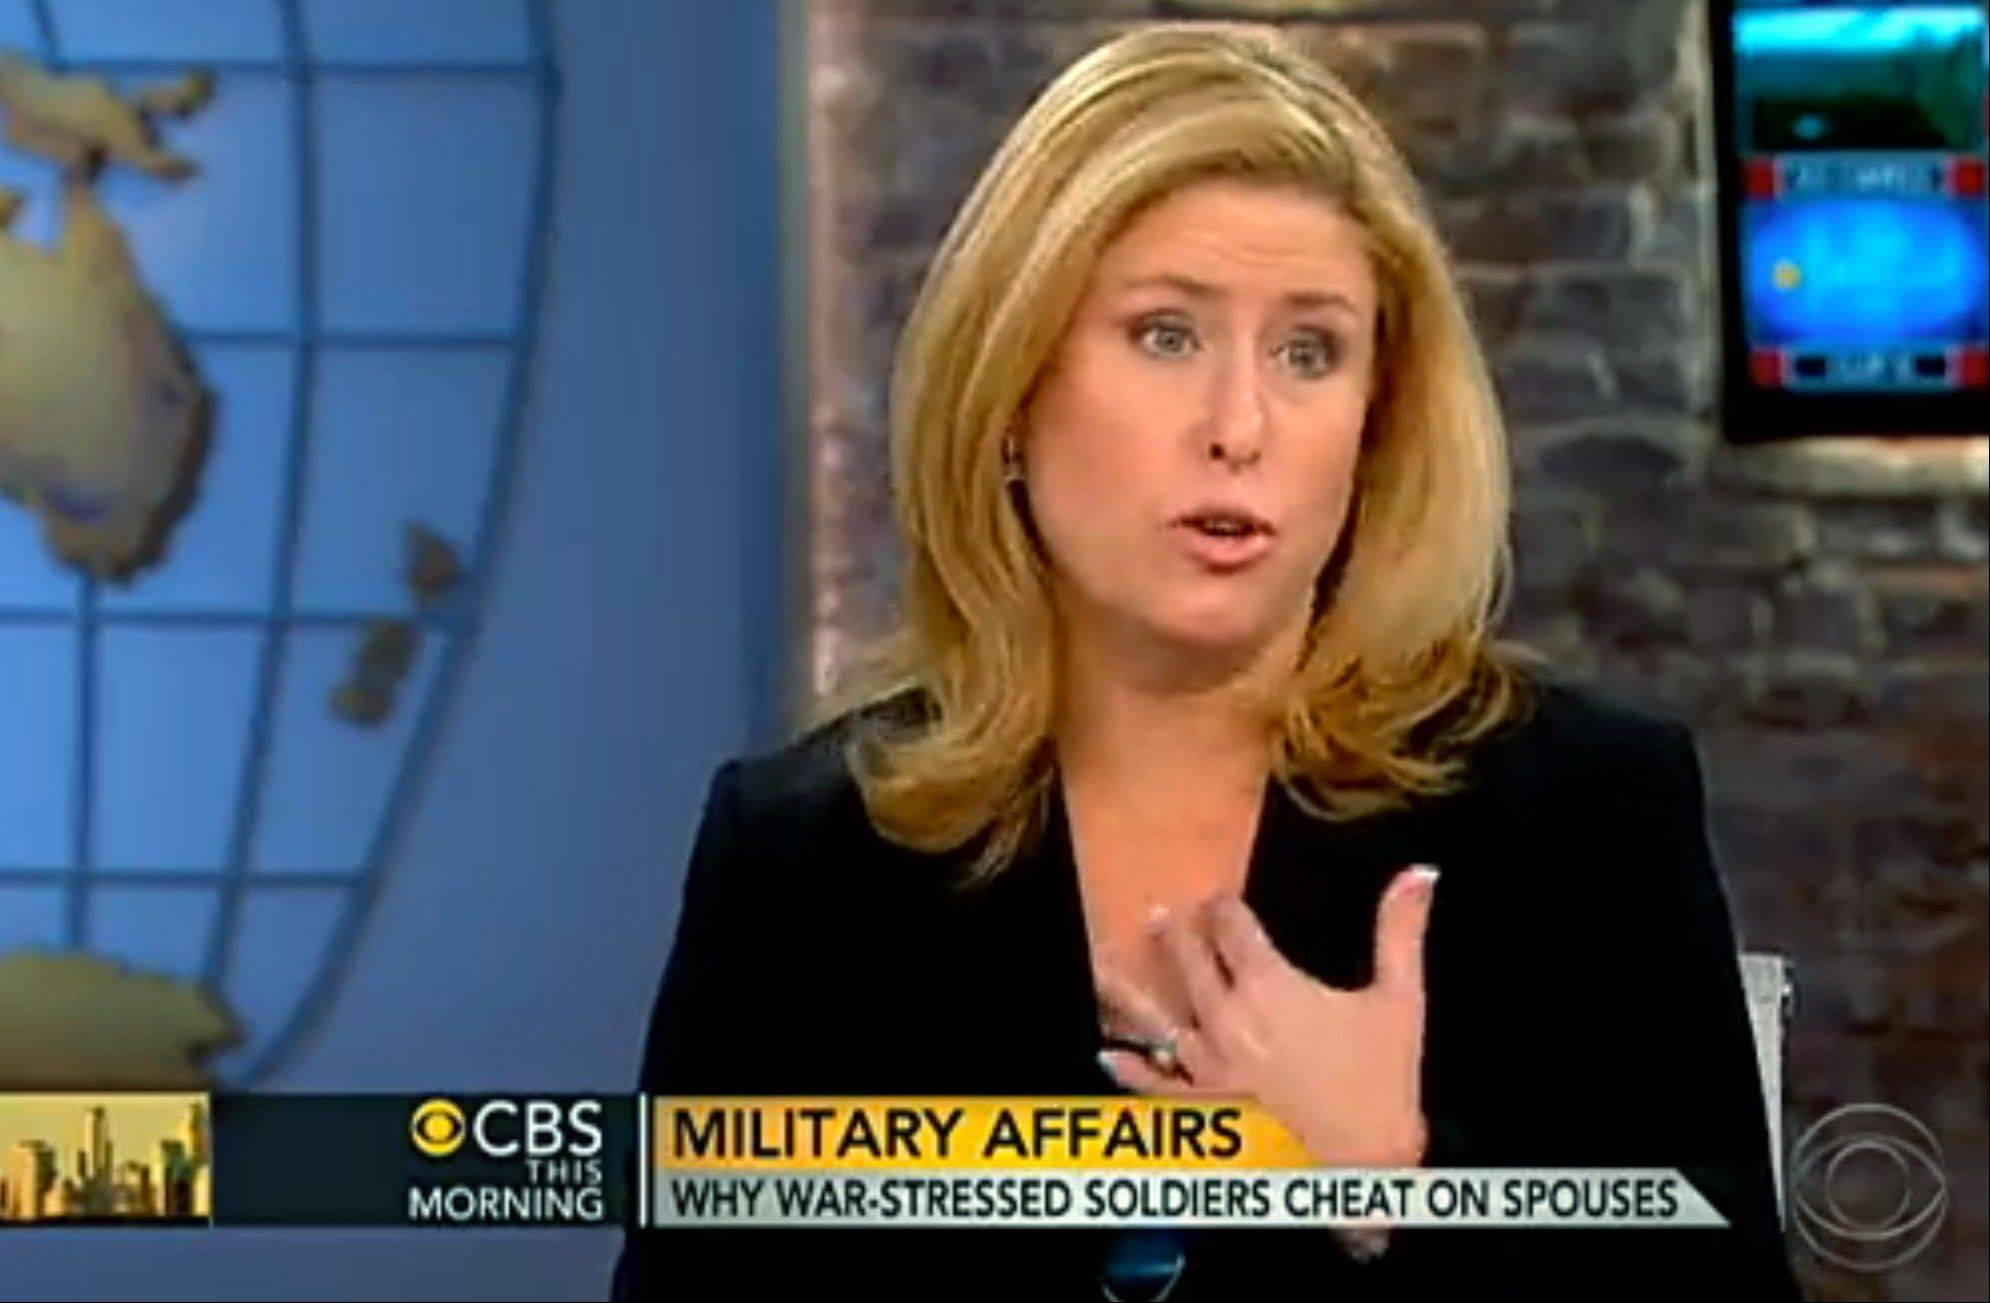 Rebecca Sinclair, wife of Brig. Gen. Jeffrey Sinclair, appeared on CBS �This Morning� to address the sexual misconduct charges against her husband, Brig. Gen. Jeffrey Sinclair, and to stir a broader look at often taboo subjects in military marriages: adultery, the strain of separation and the stress of war.